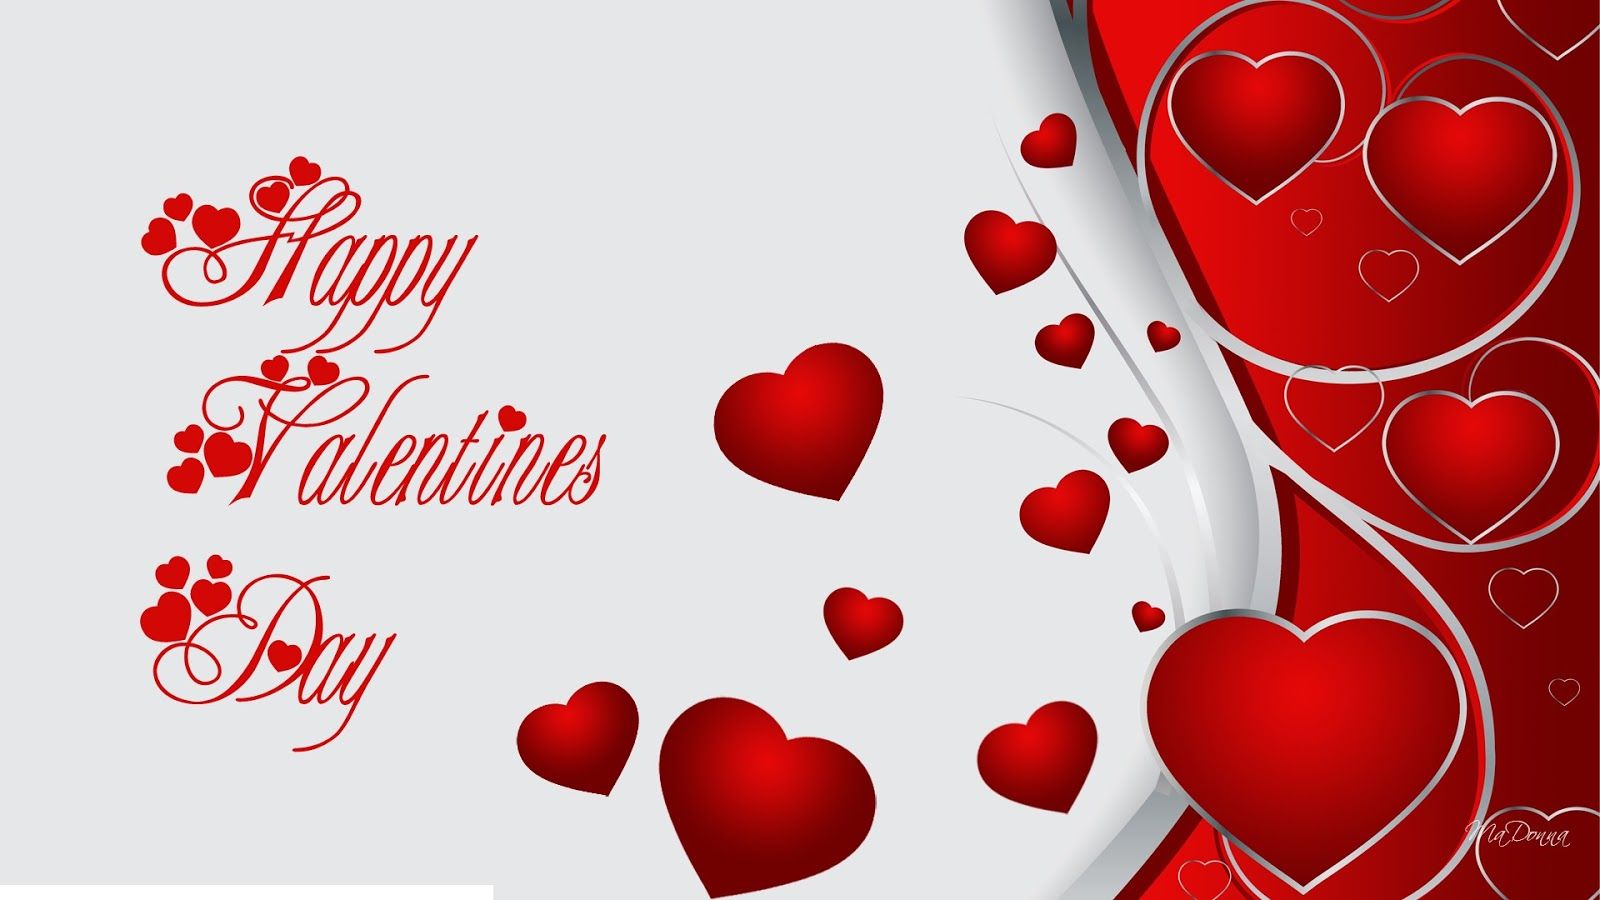 happy valentines day images 2018 for lovers, couples, girlfriend